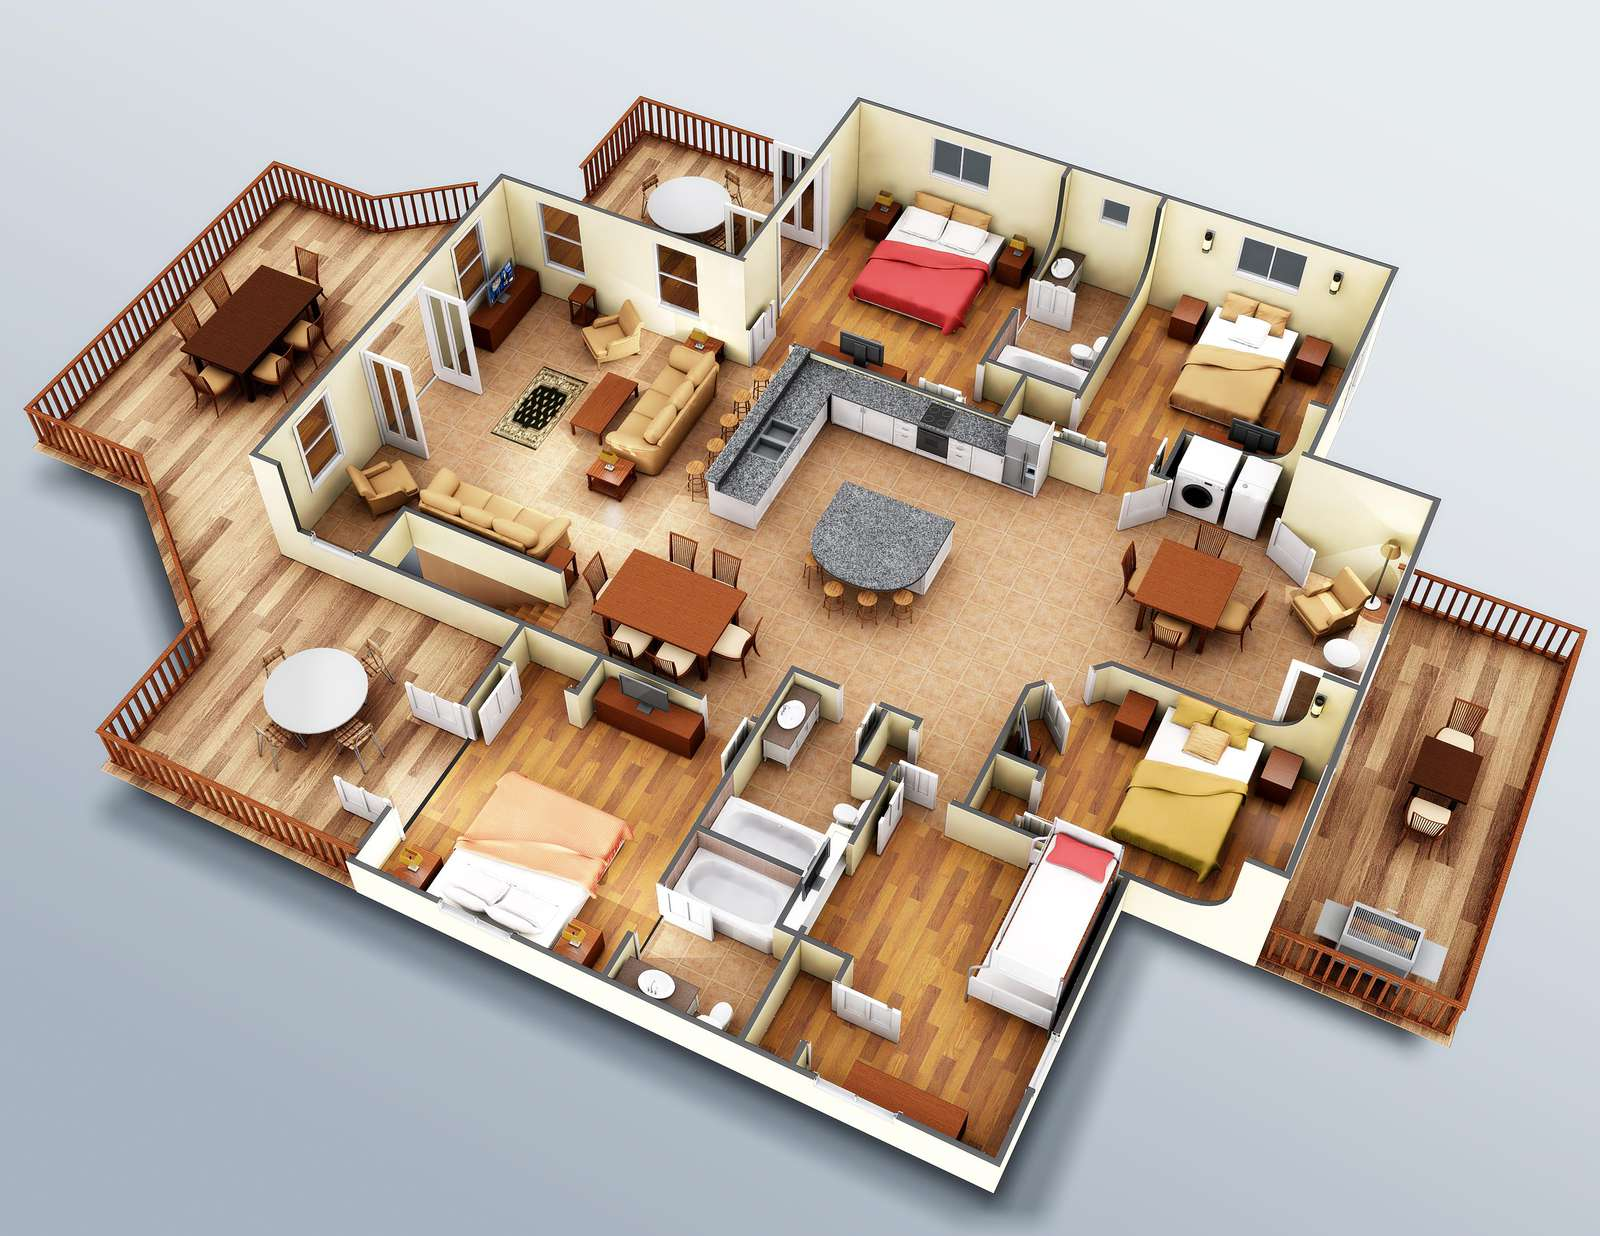 Use these accurate (down to the furniture) renderings coupled with the pictures to fully understand the interior layout.